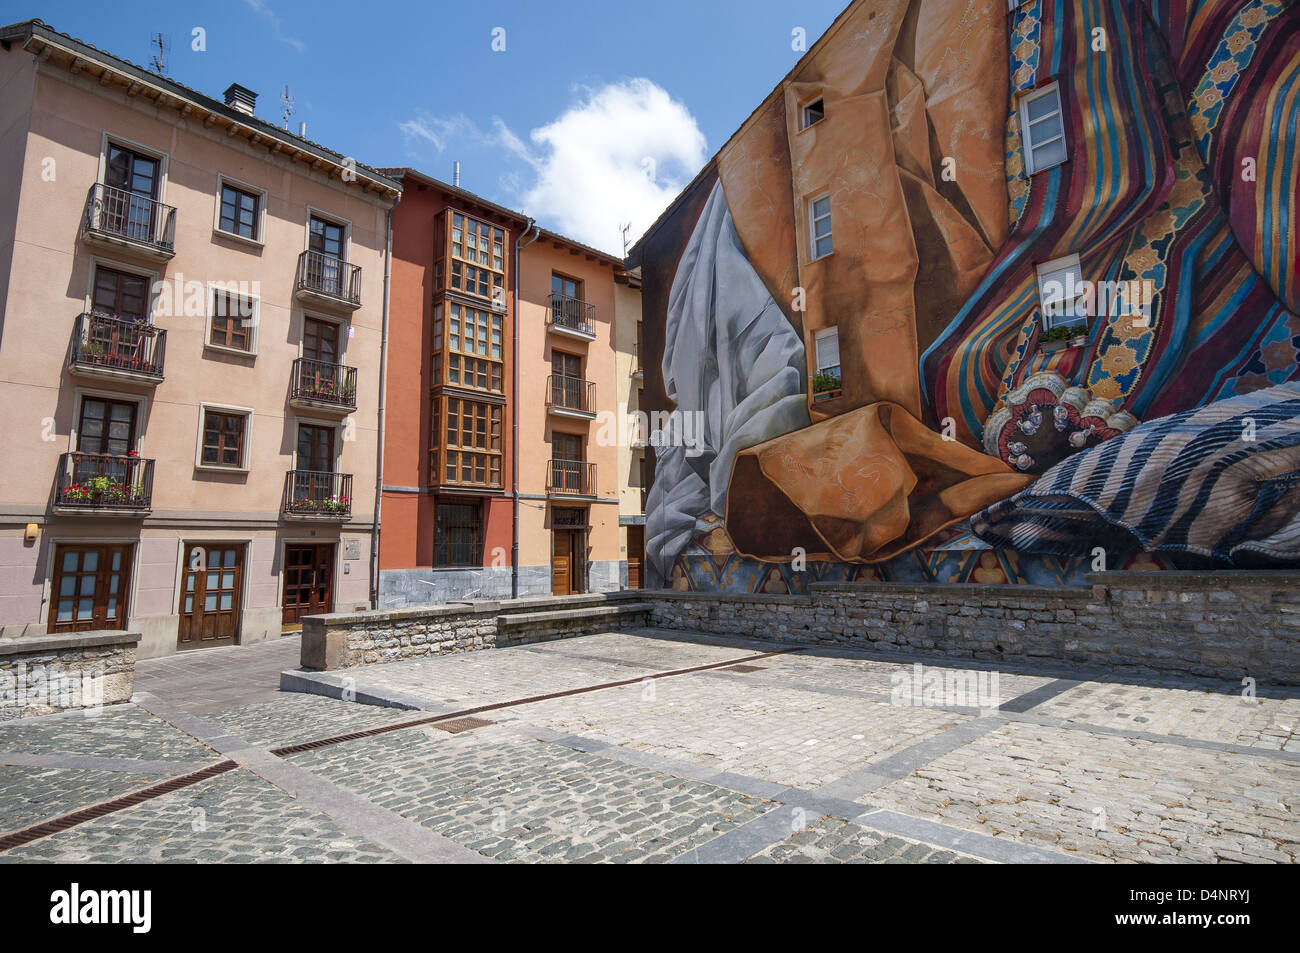 large wall mural stock photos large wall mural stock images alamy large wall mural in the plaza de las brullerias showing the various traditional trades in vitoria